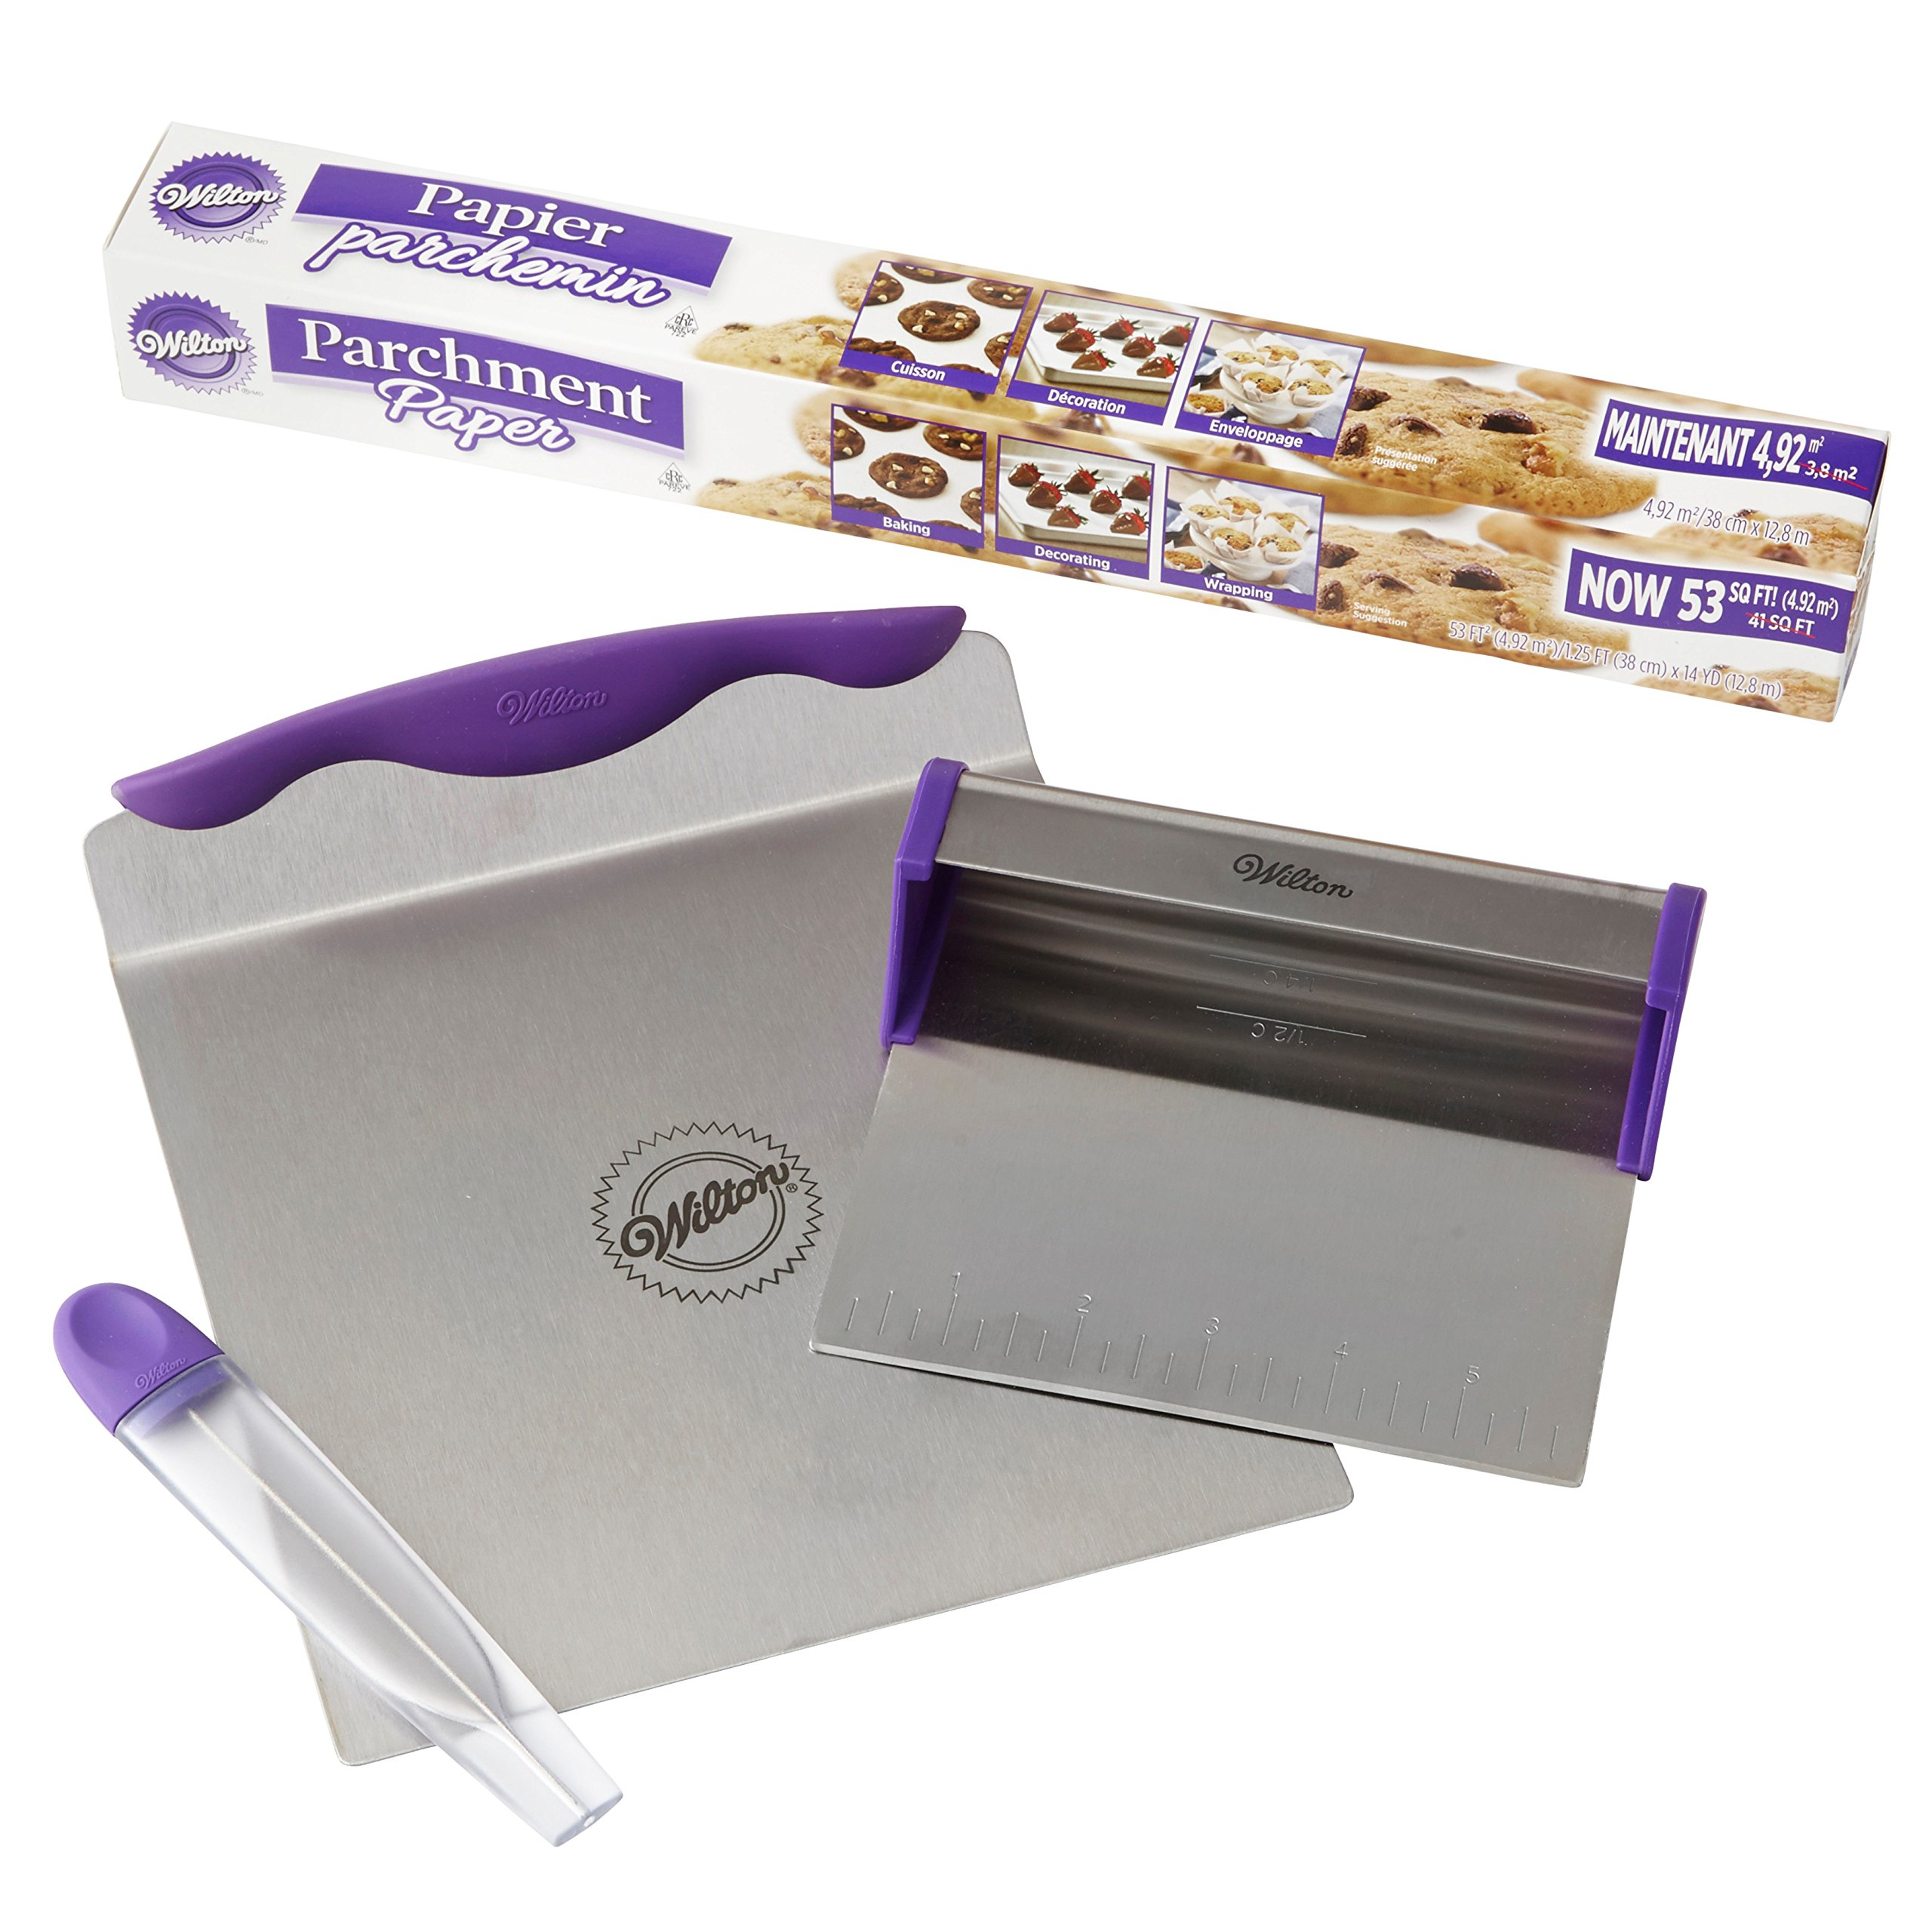 Wilton Cake Baking Tools and Parchment Paper Set - 8-inch Baker's Blade Cake Lifter, Cake Tester, 53 sq. ft. Parchment Paper